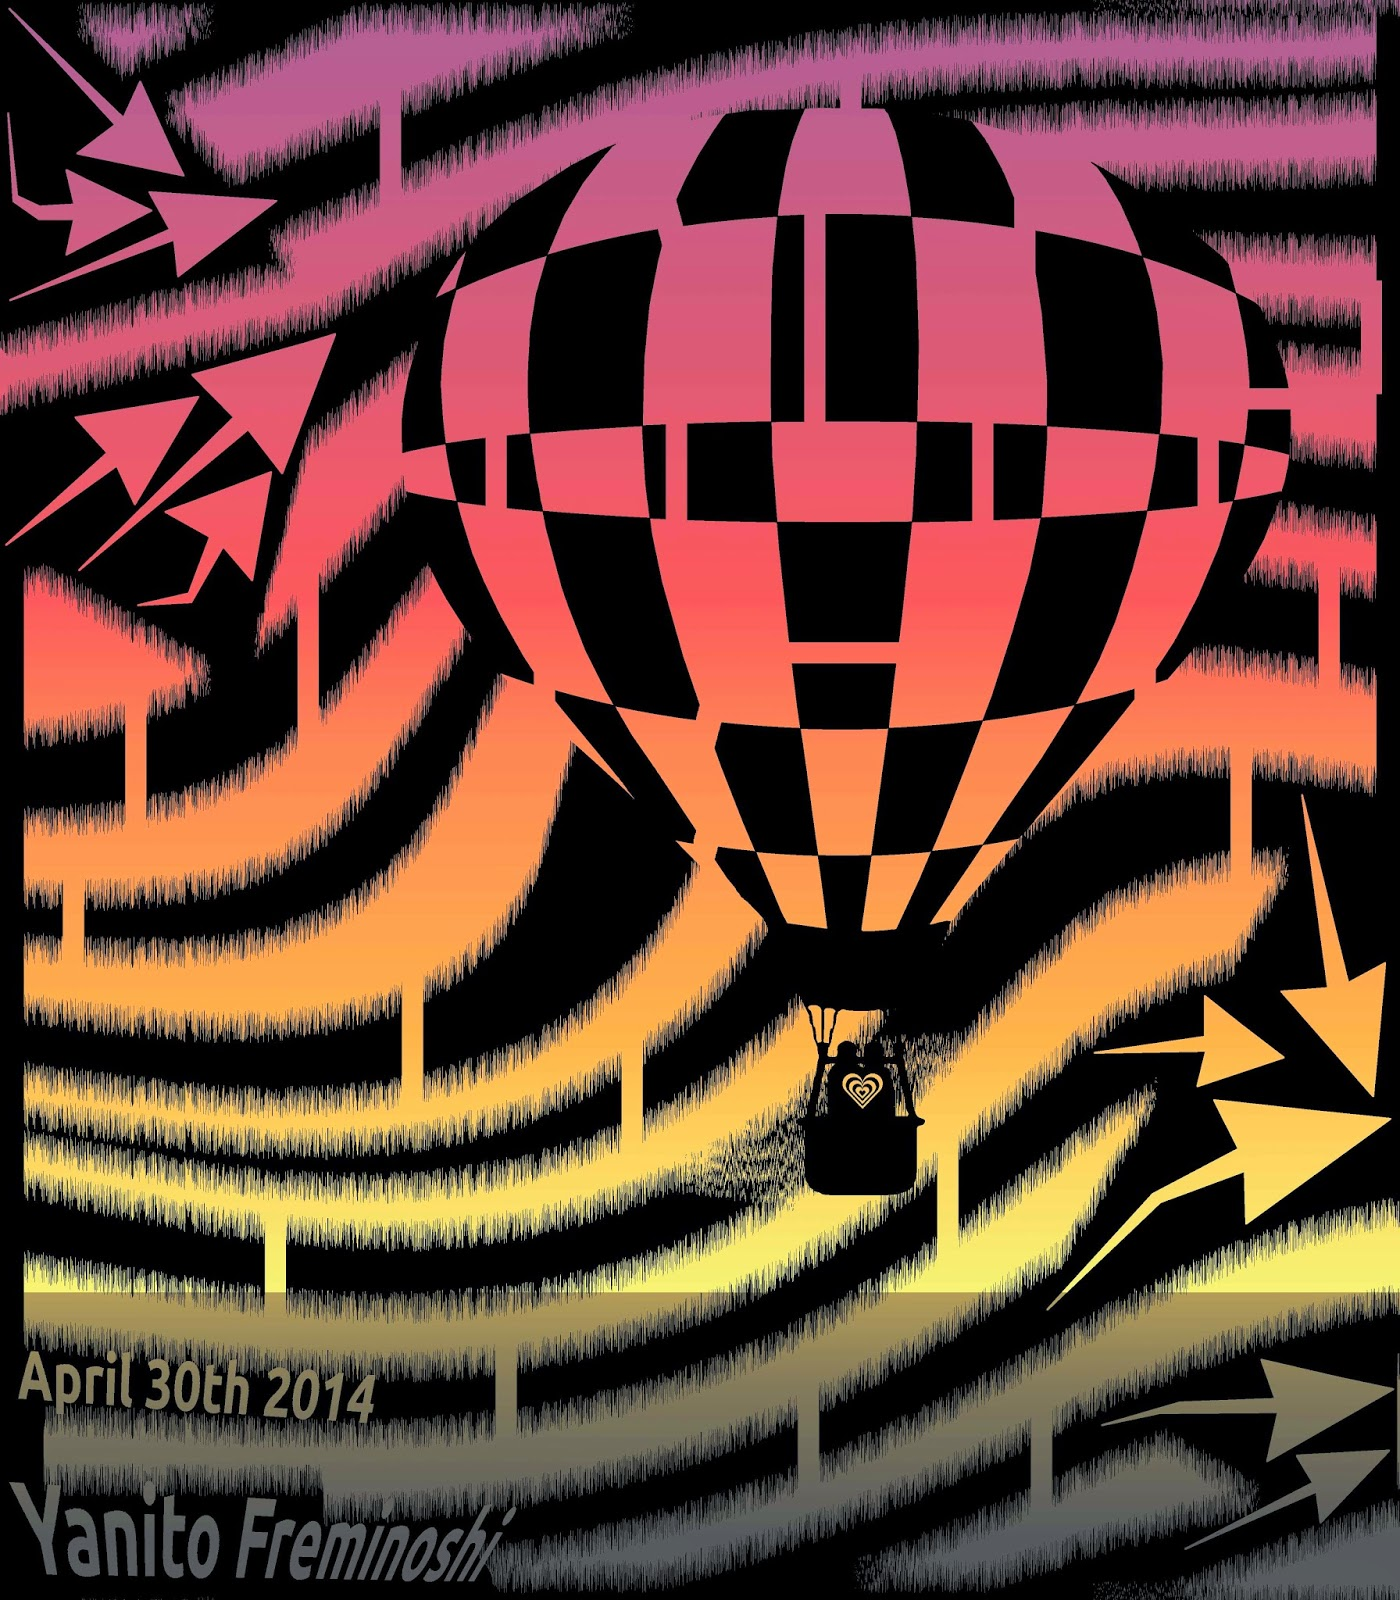 Maze of hot air balloon sunrise